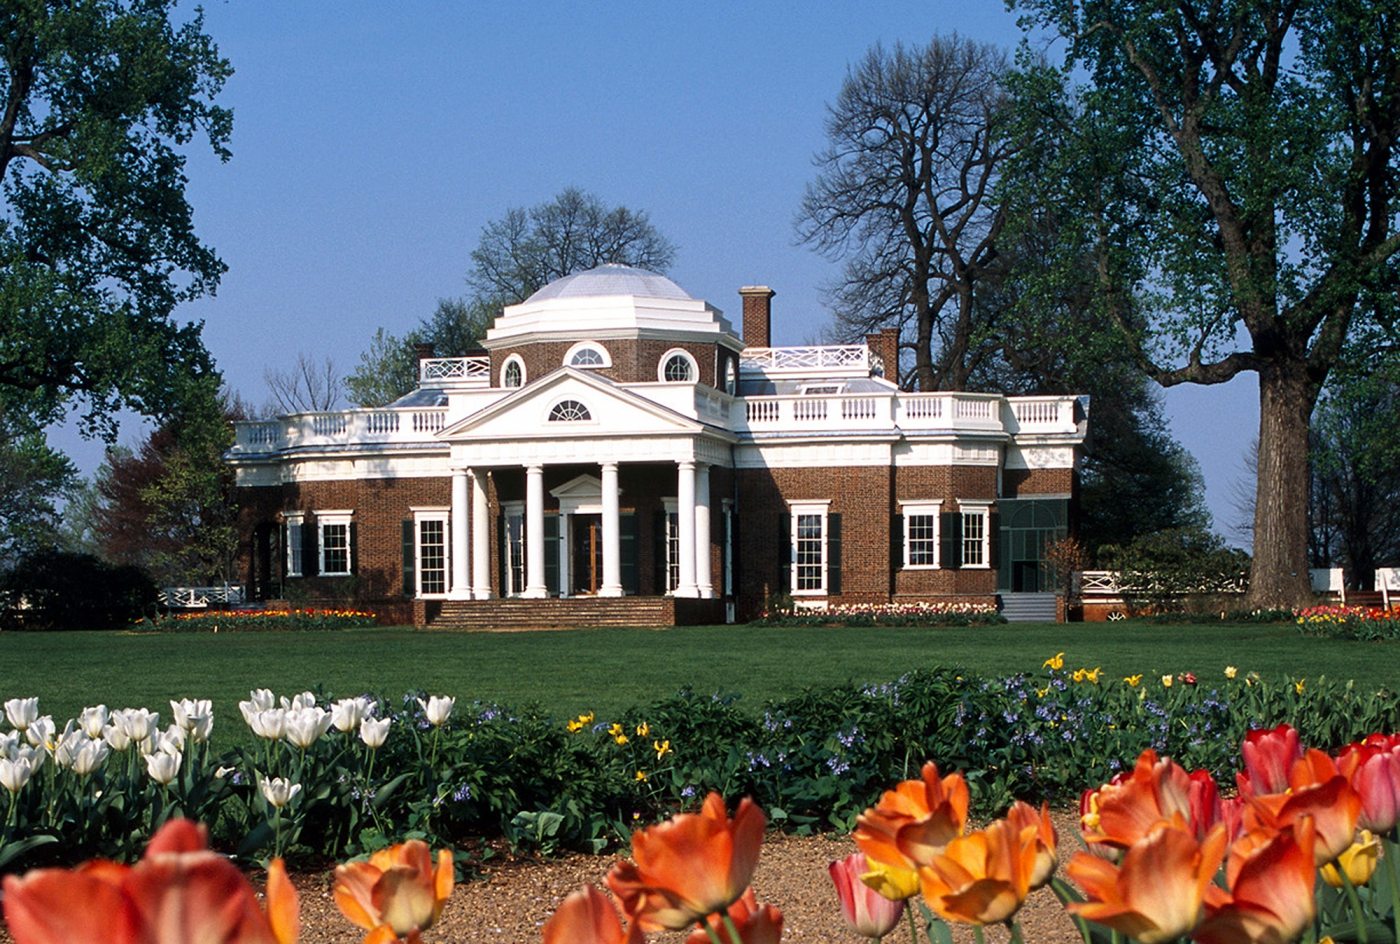 Monticello was home to Thomas Jefferson, the third president of the United States. ©Stephanie Gross